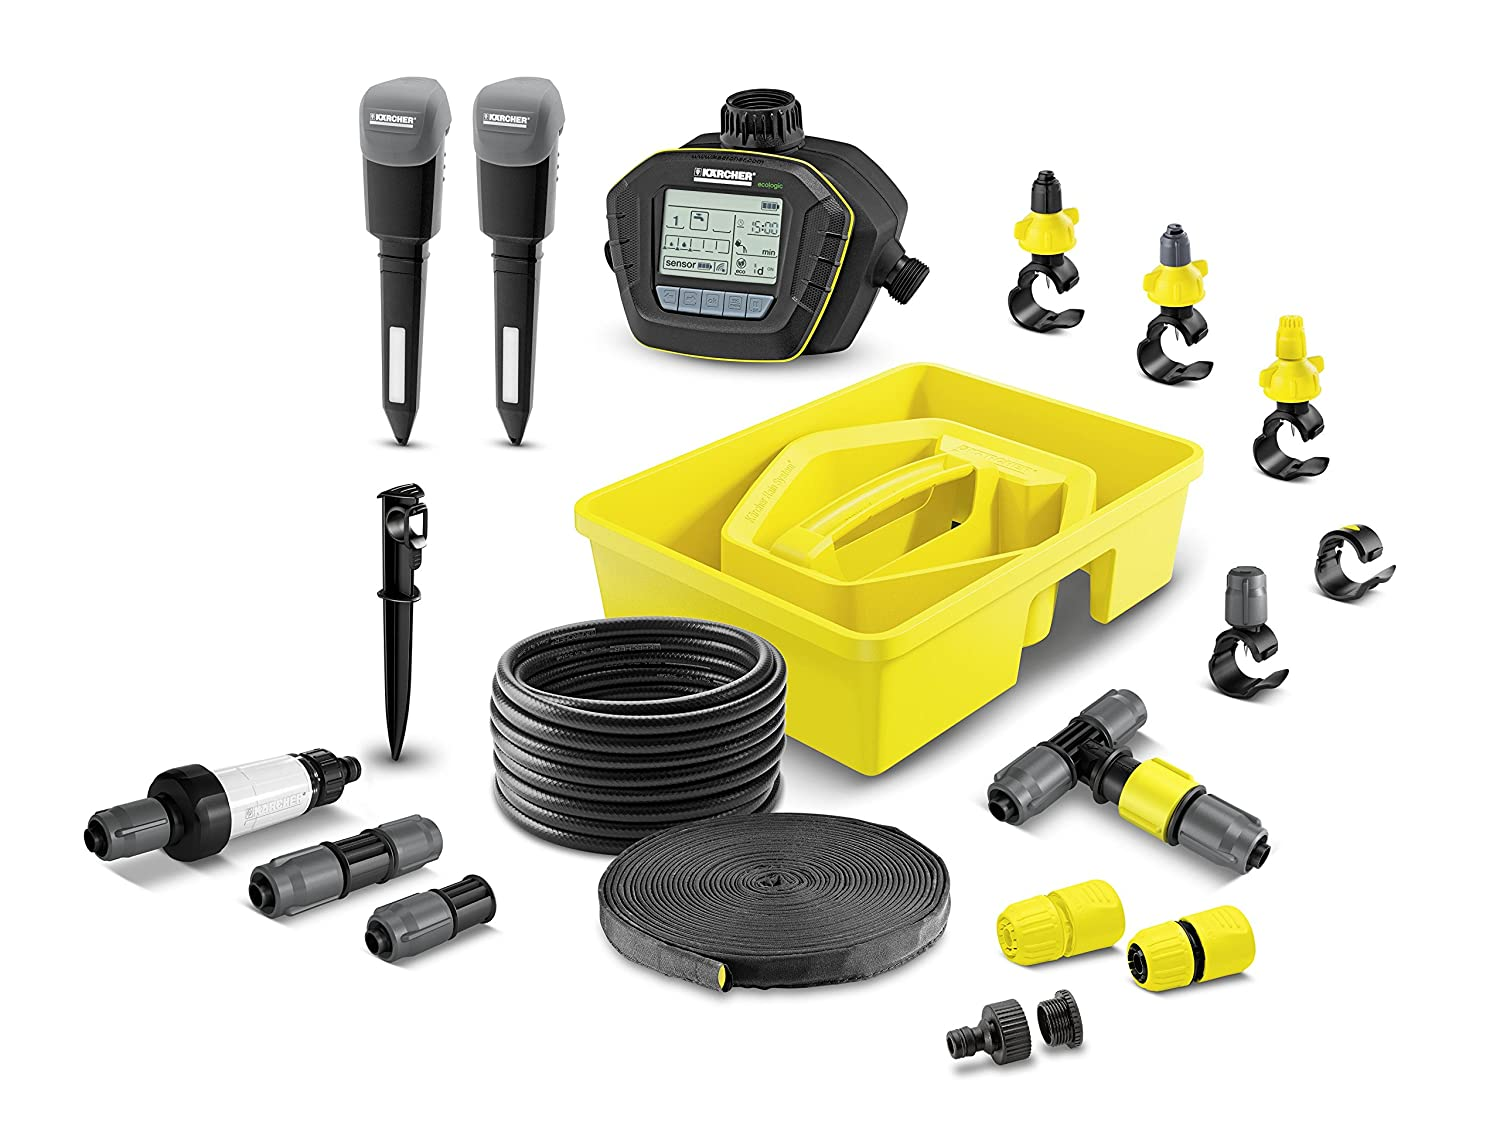 Karcher Deluxe Gartenbewässerungs-Set